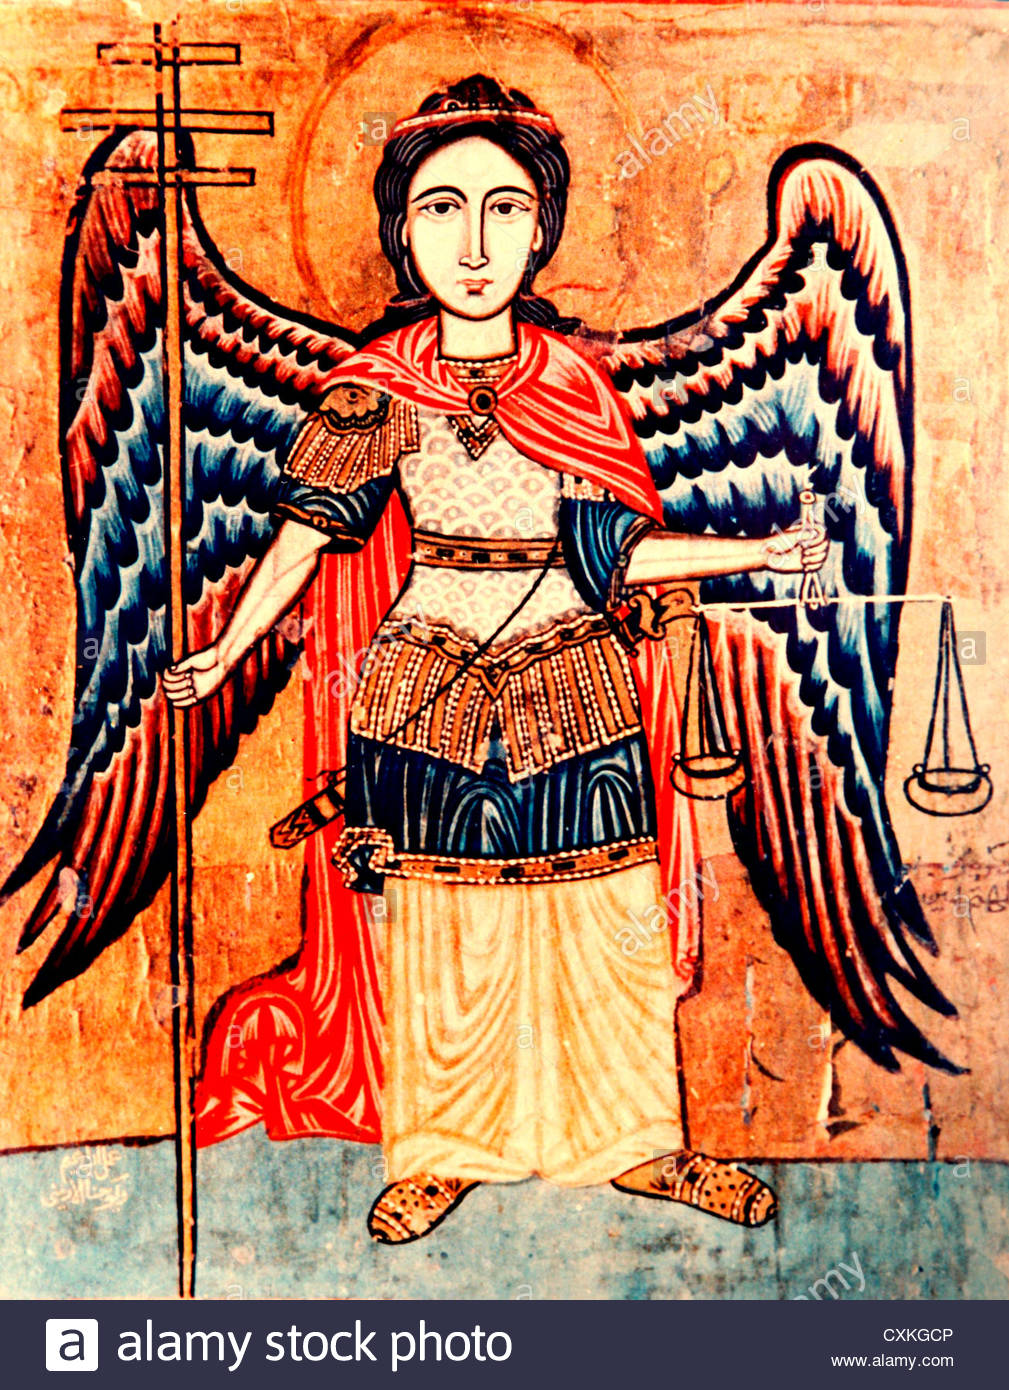 Coptic Christian Artwork depicting the Archangel Michael holding the scales of justice. - Stock Image